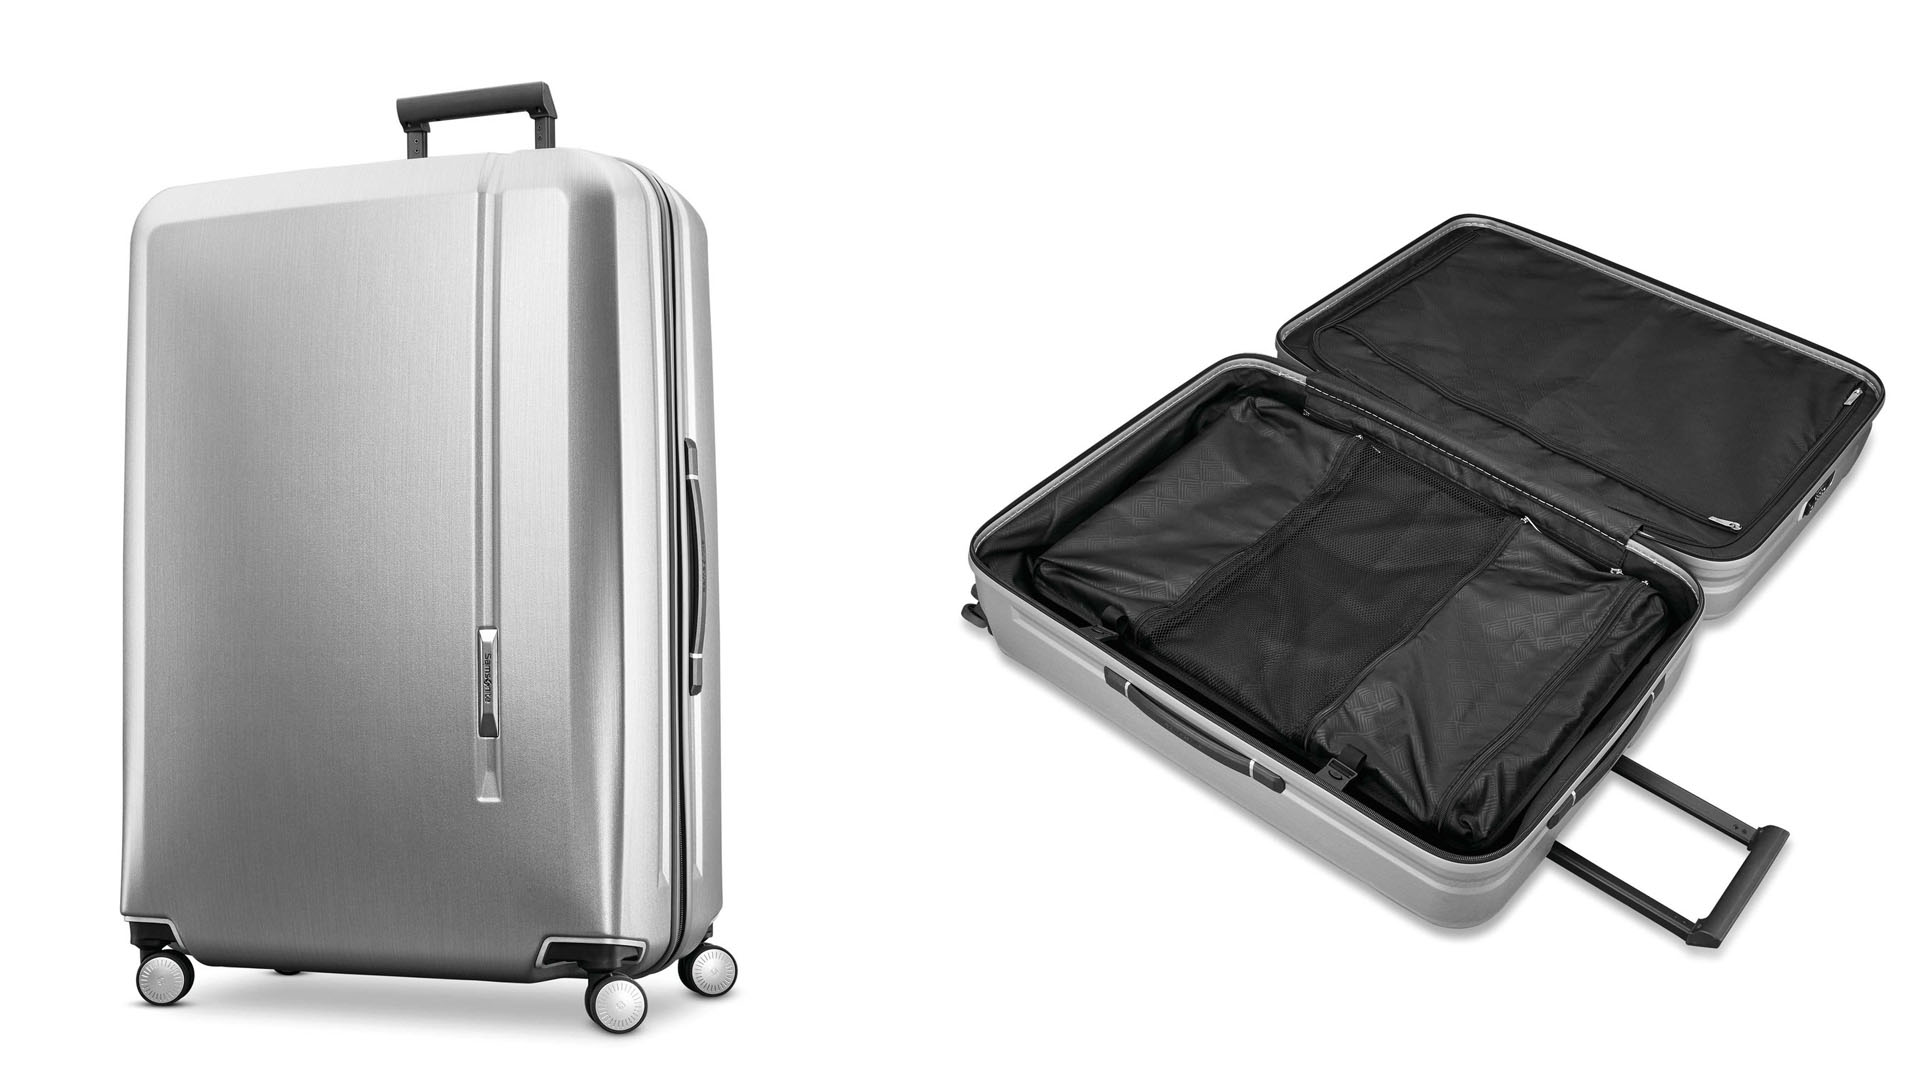 7 Different Samsonite Luggage and Bags - Novaire 30 Spinner